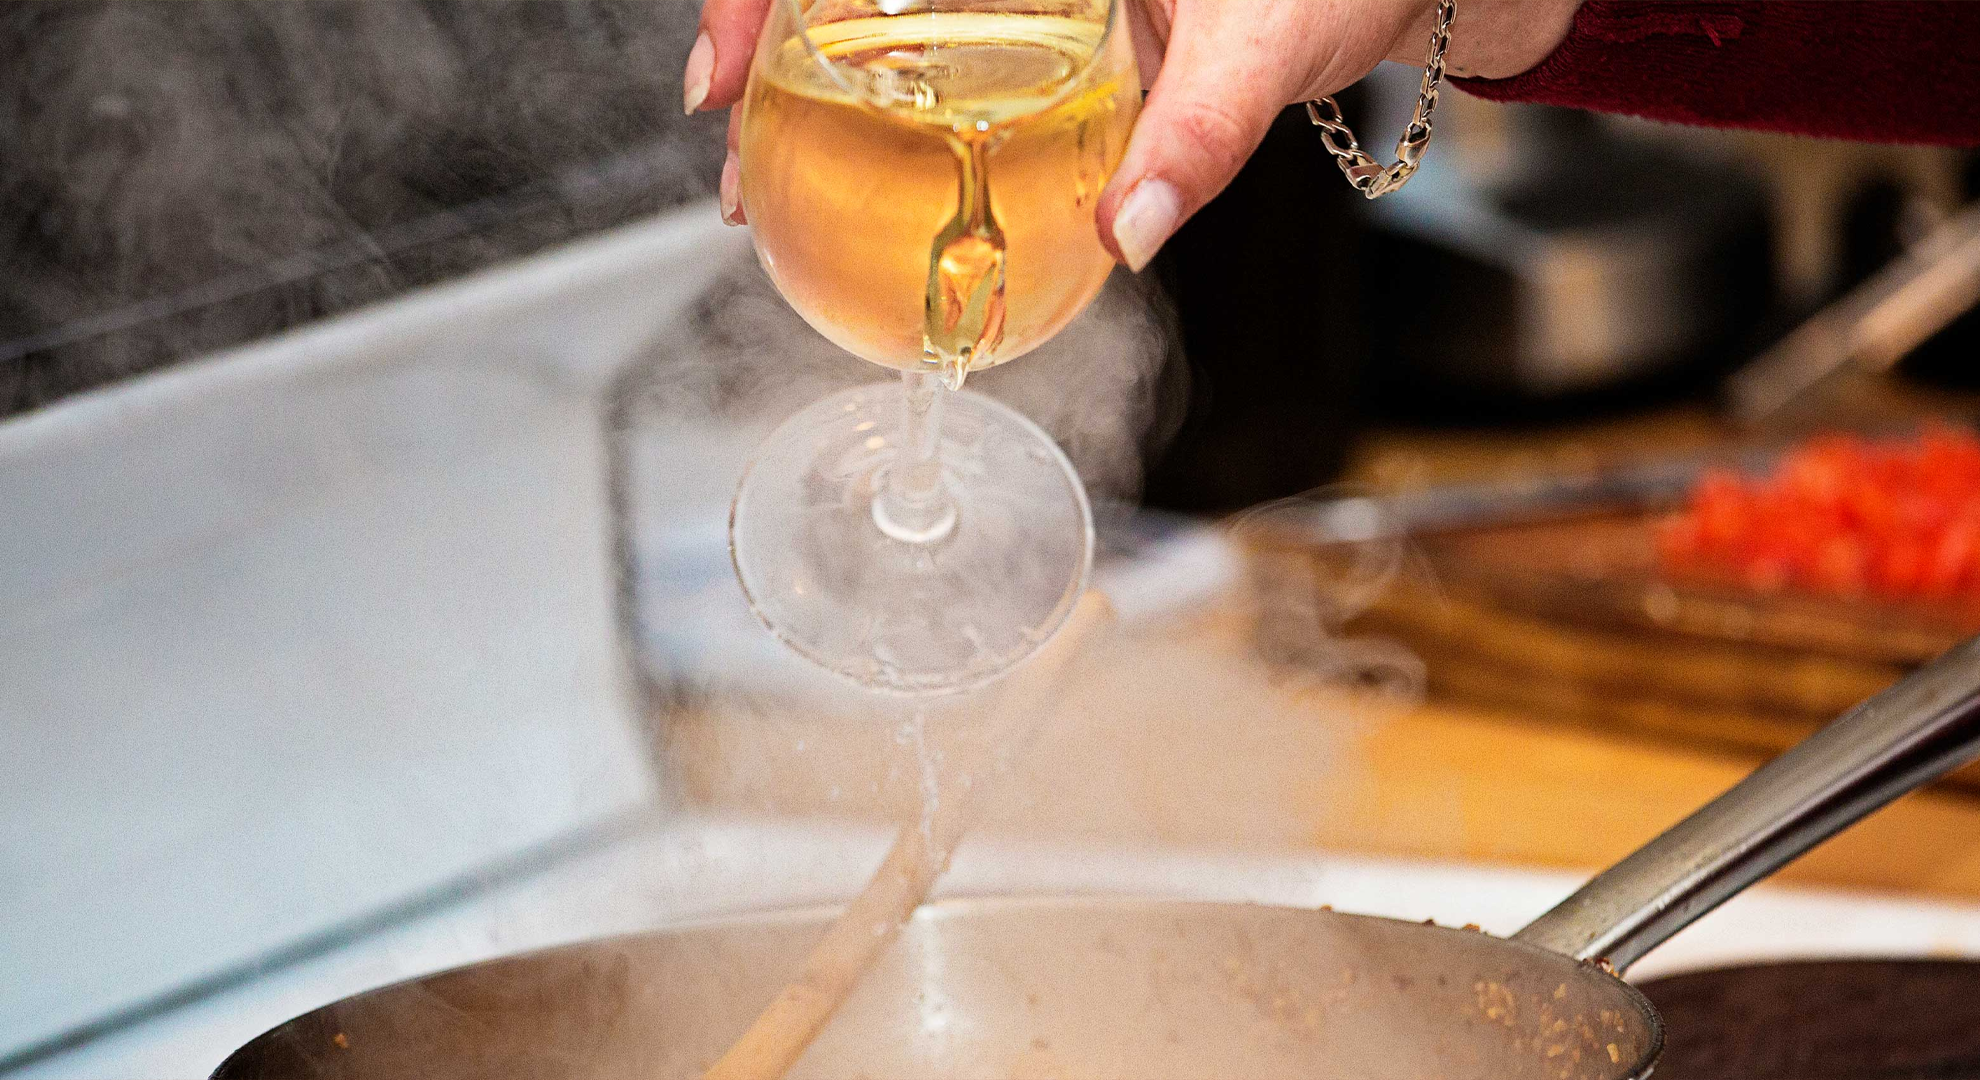 Wine being poured into a cooking pot over a stove.